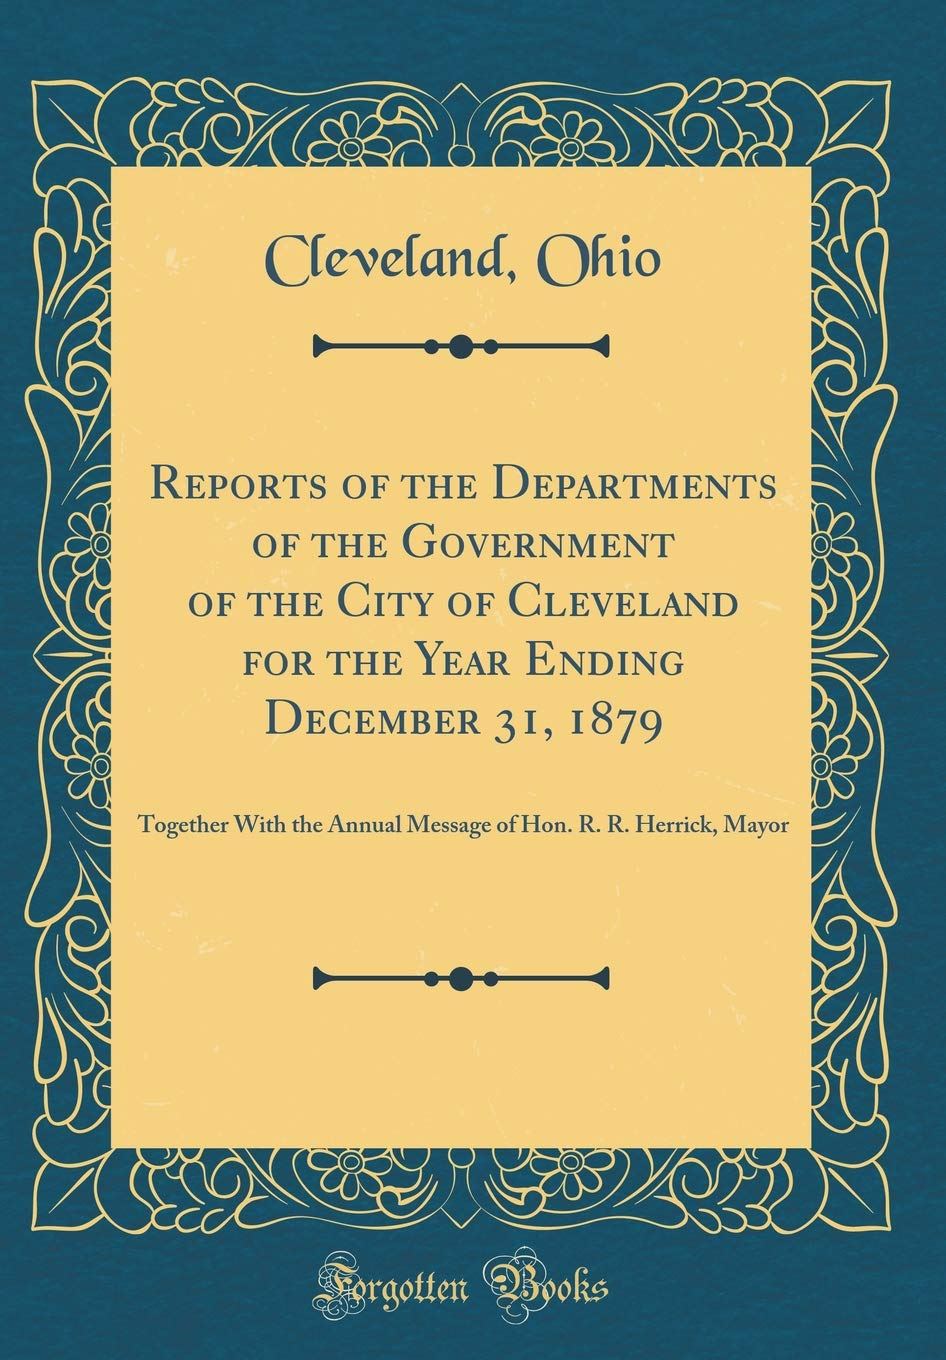 Download Reports of the Departments of the Government of the City of Cleveland for the Year Ending December 31, 1879: Together with the Annual Message of Hon. R. R. Herrick, Mayor (Classic Reprint) pdf